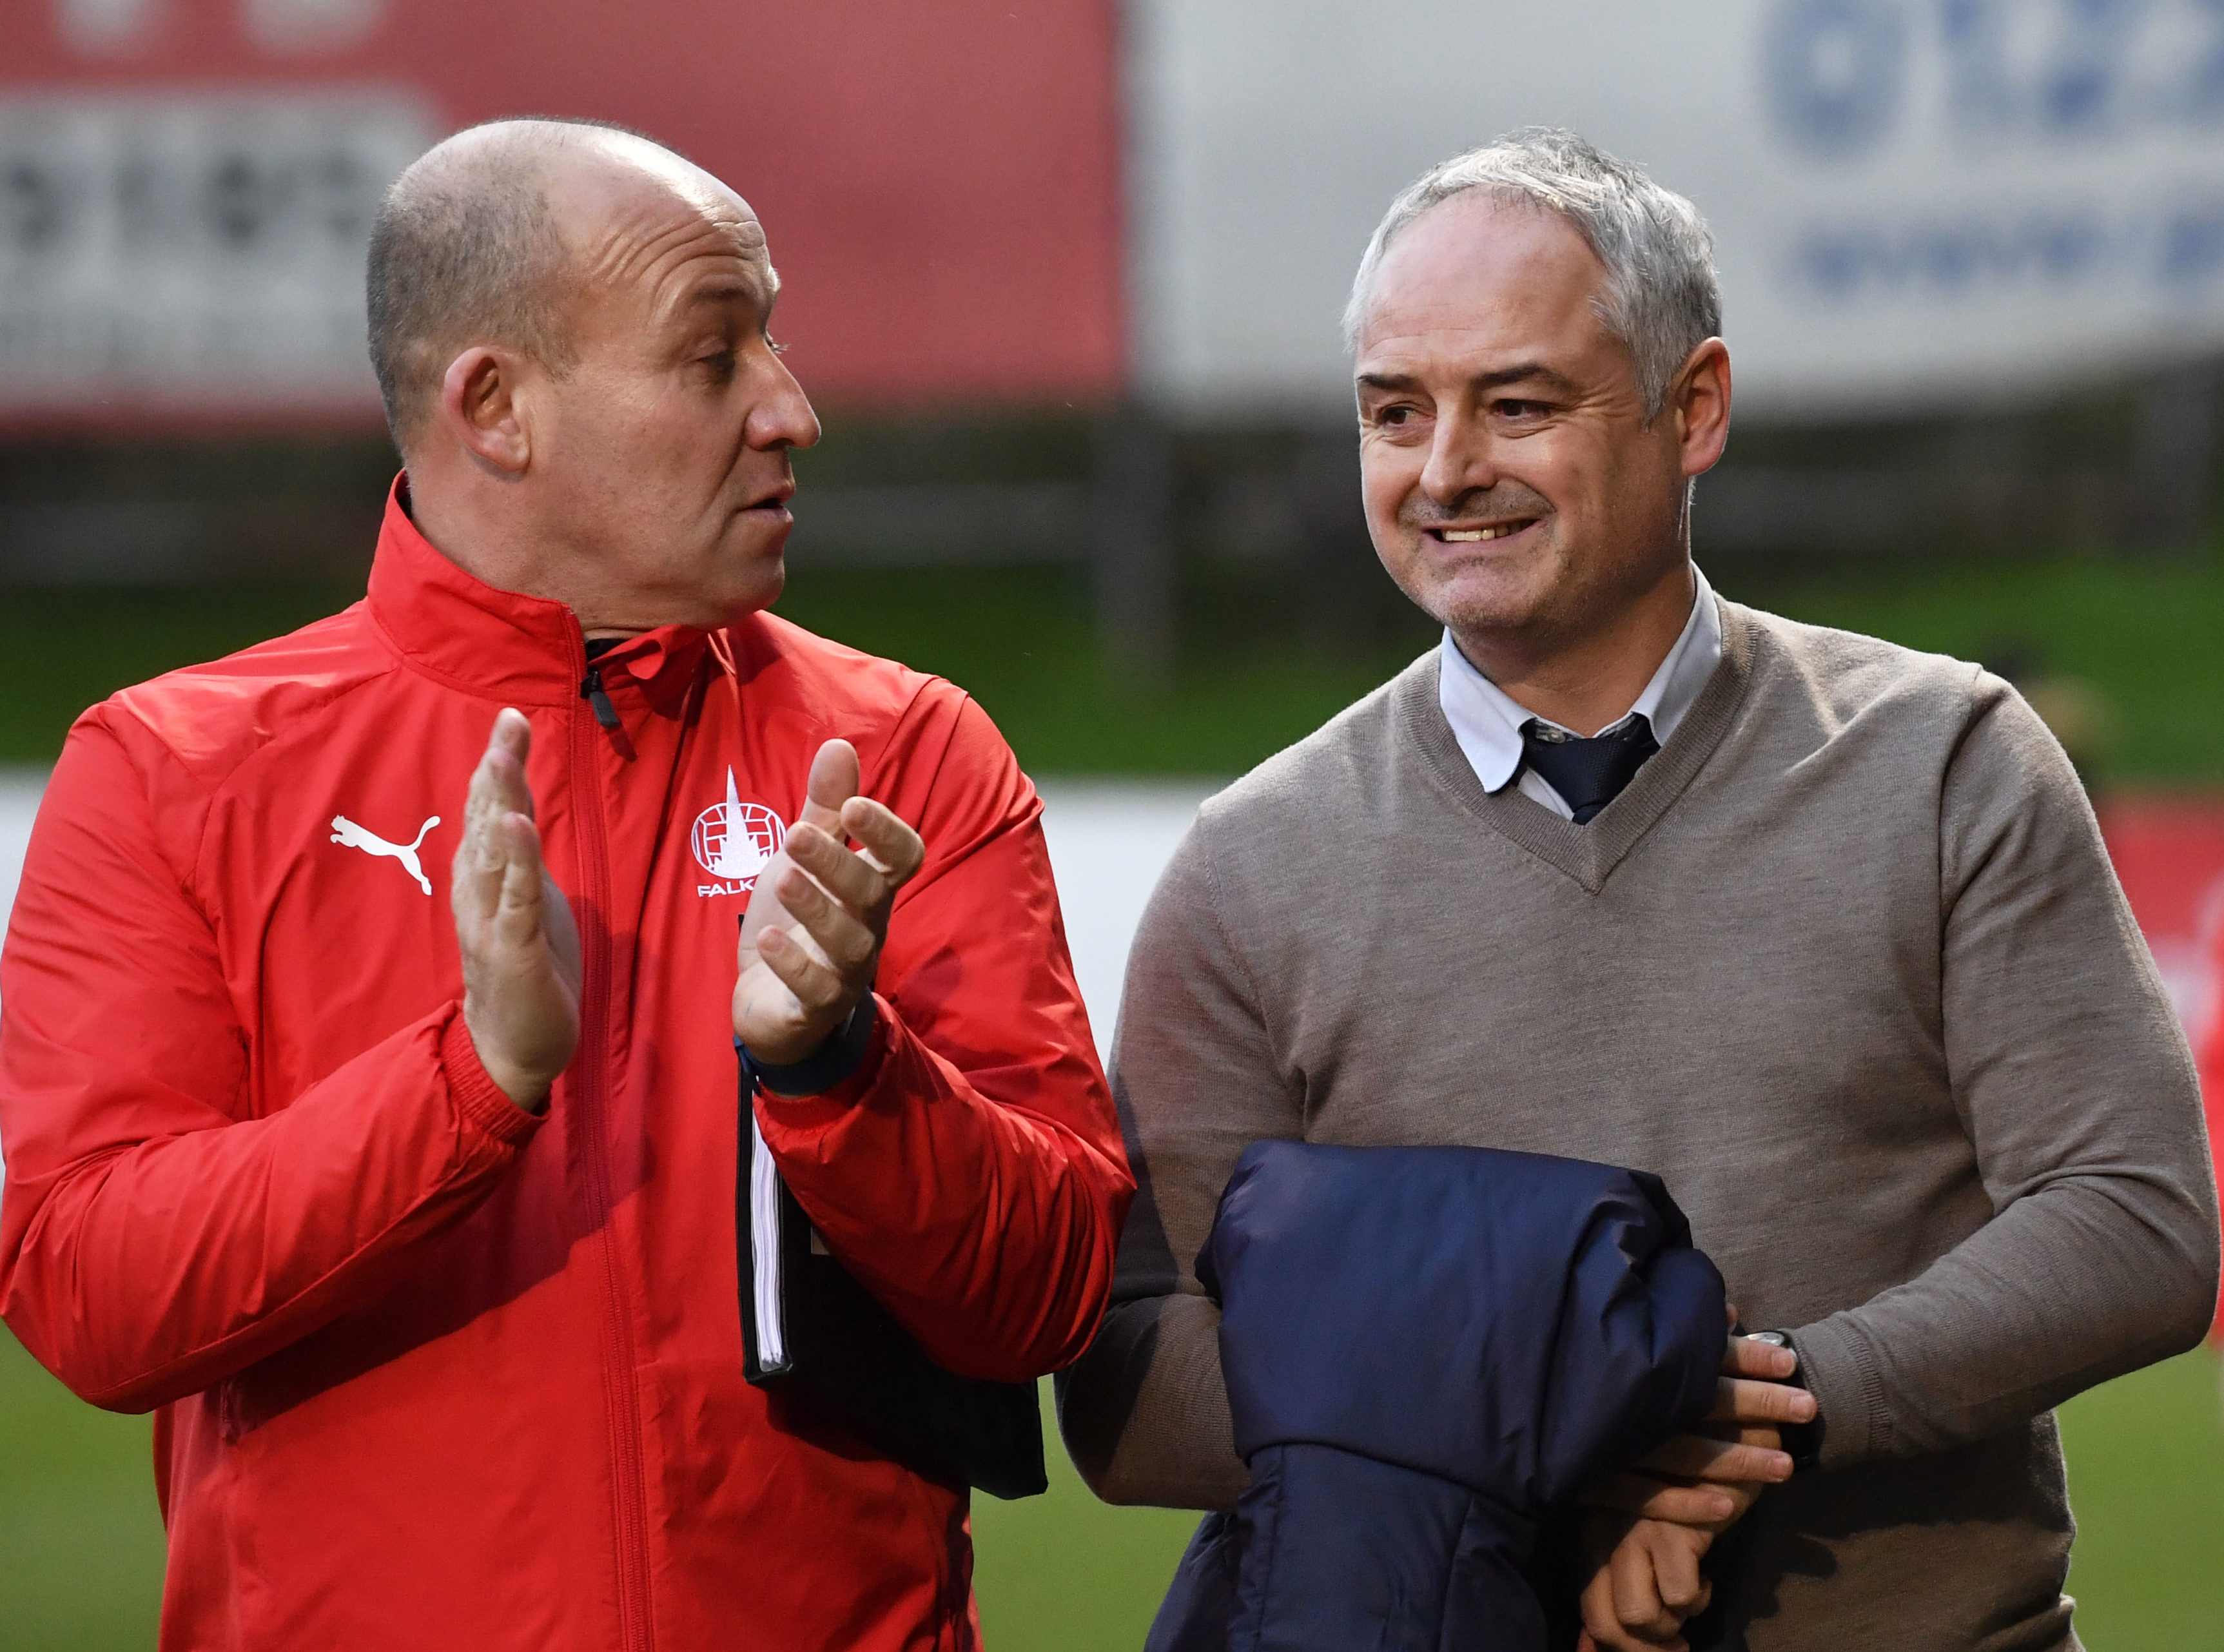 Darren Taylor and Ray McKinnon.